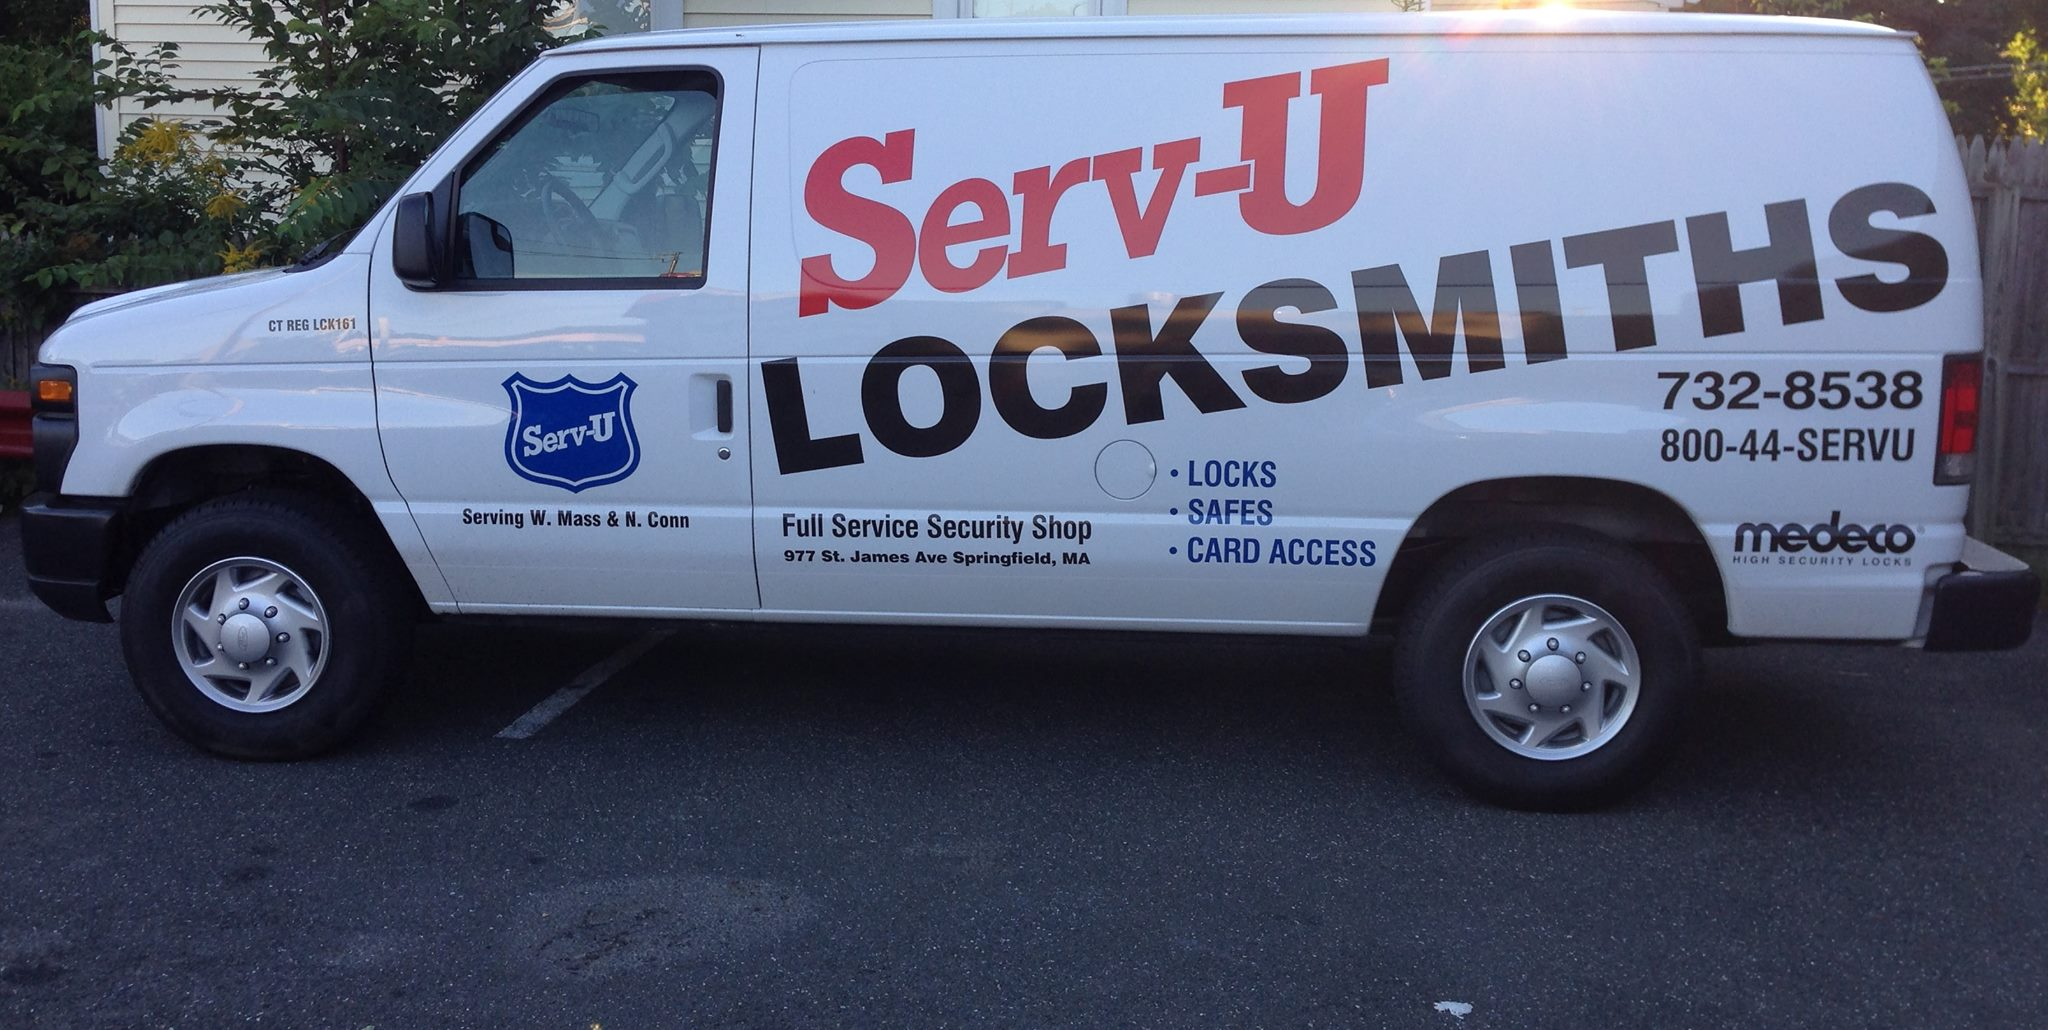 Serv-U Locksmiths van